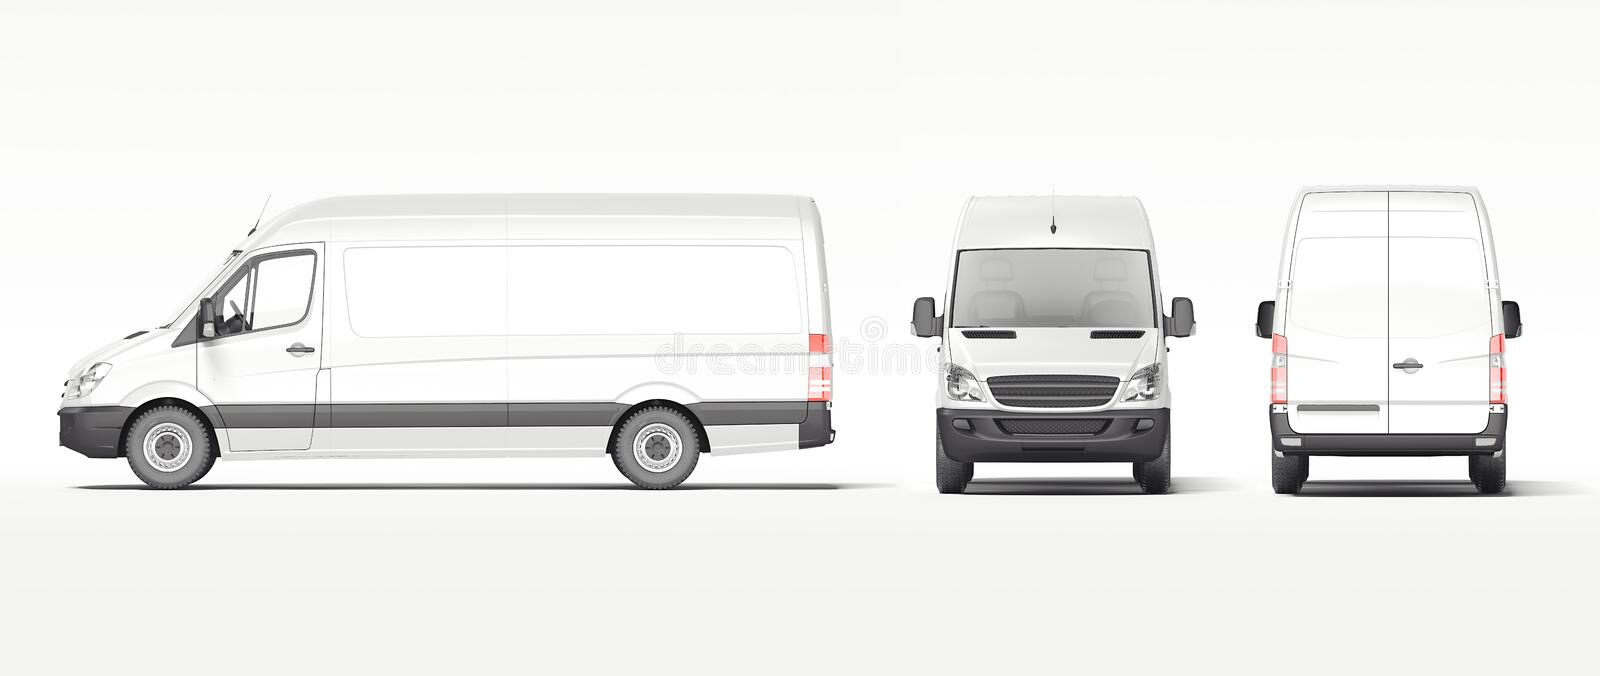 White industrial van isolated on bright background. 3d rendering vector illustration